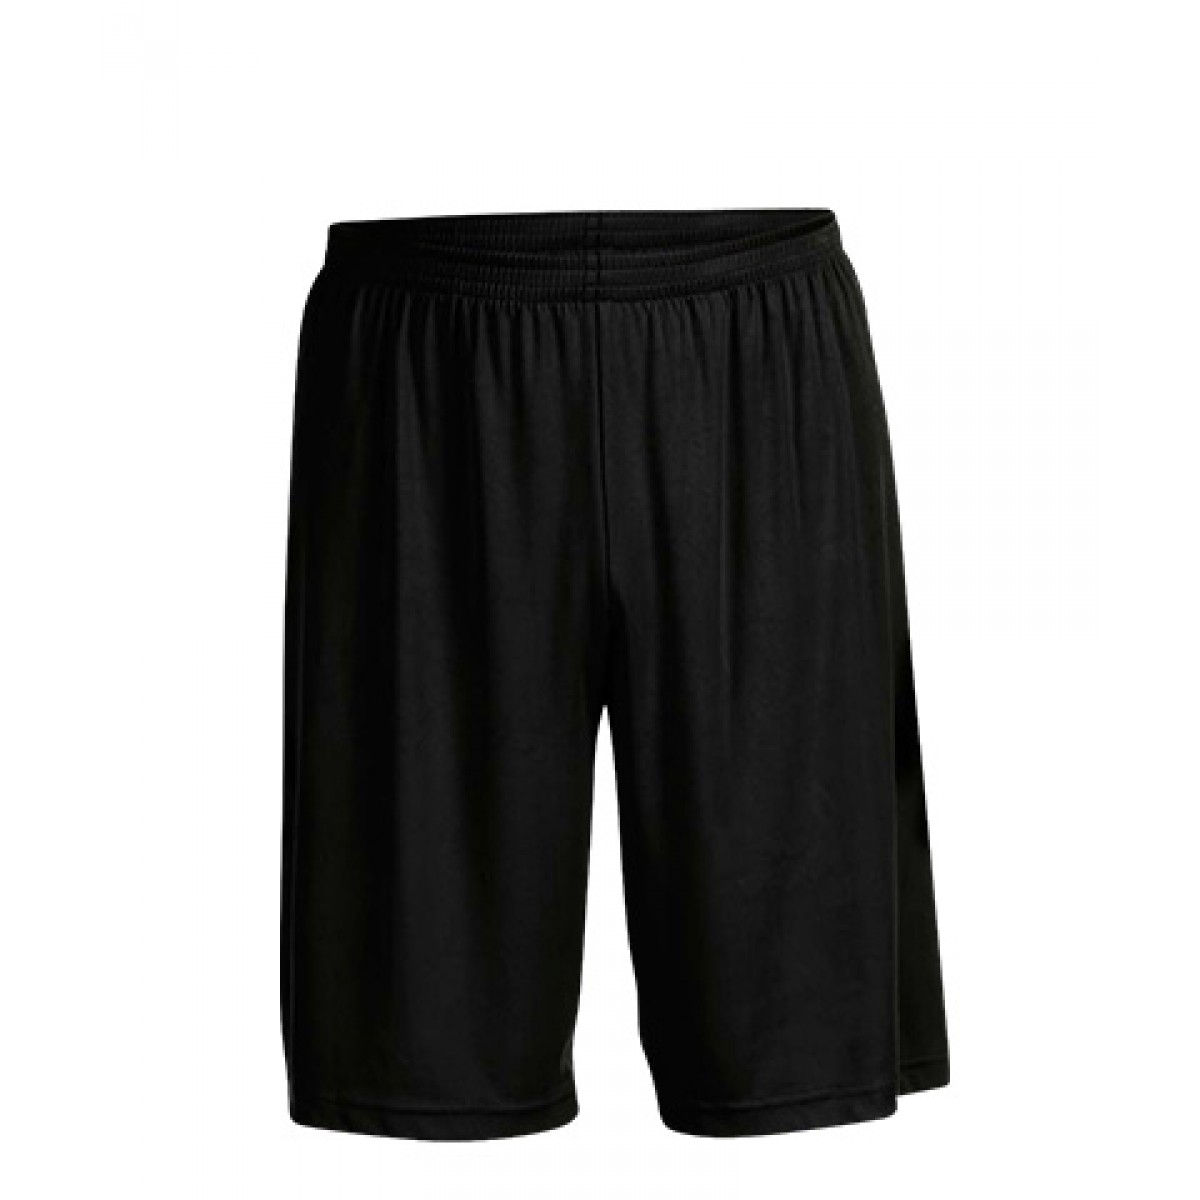 Men's Performance Shorts-Black-XL